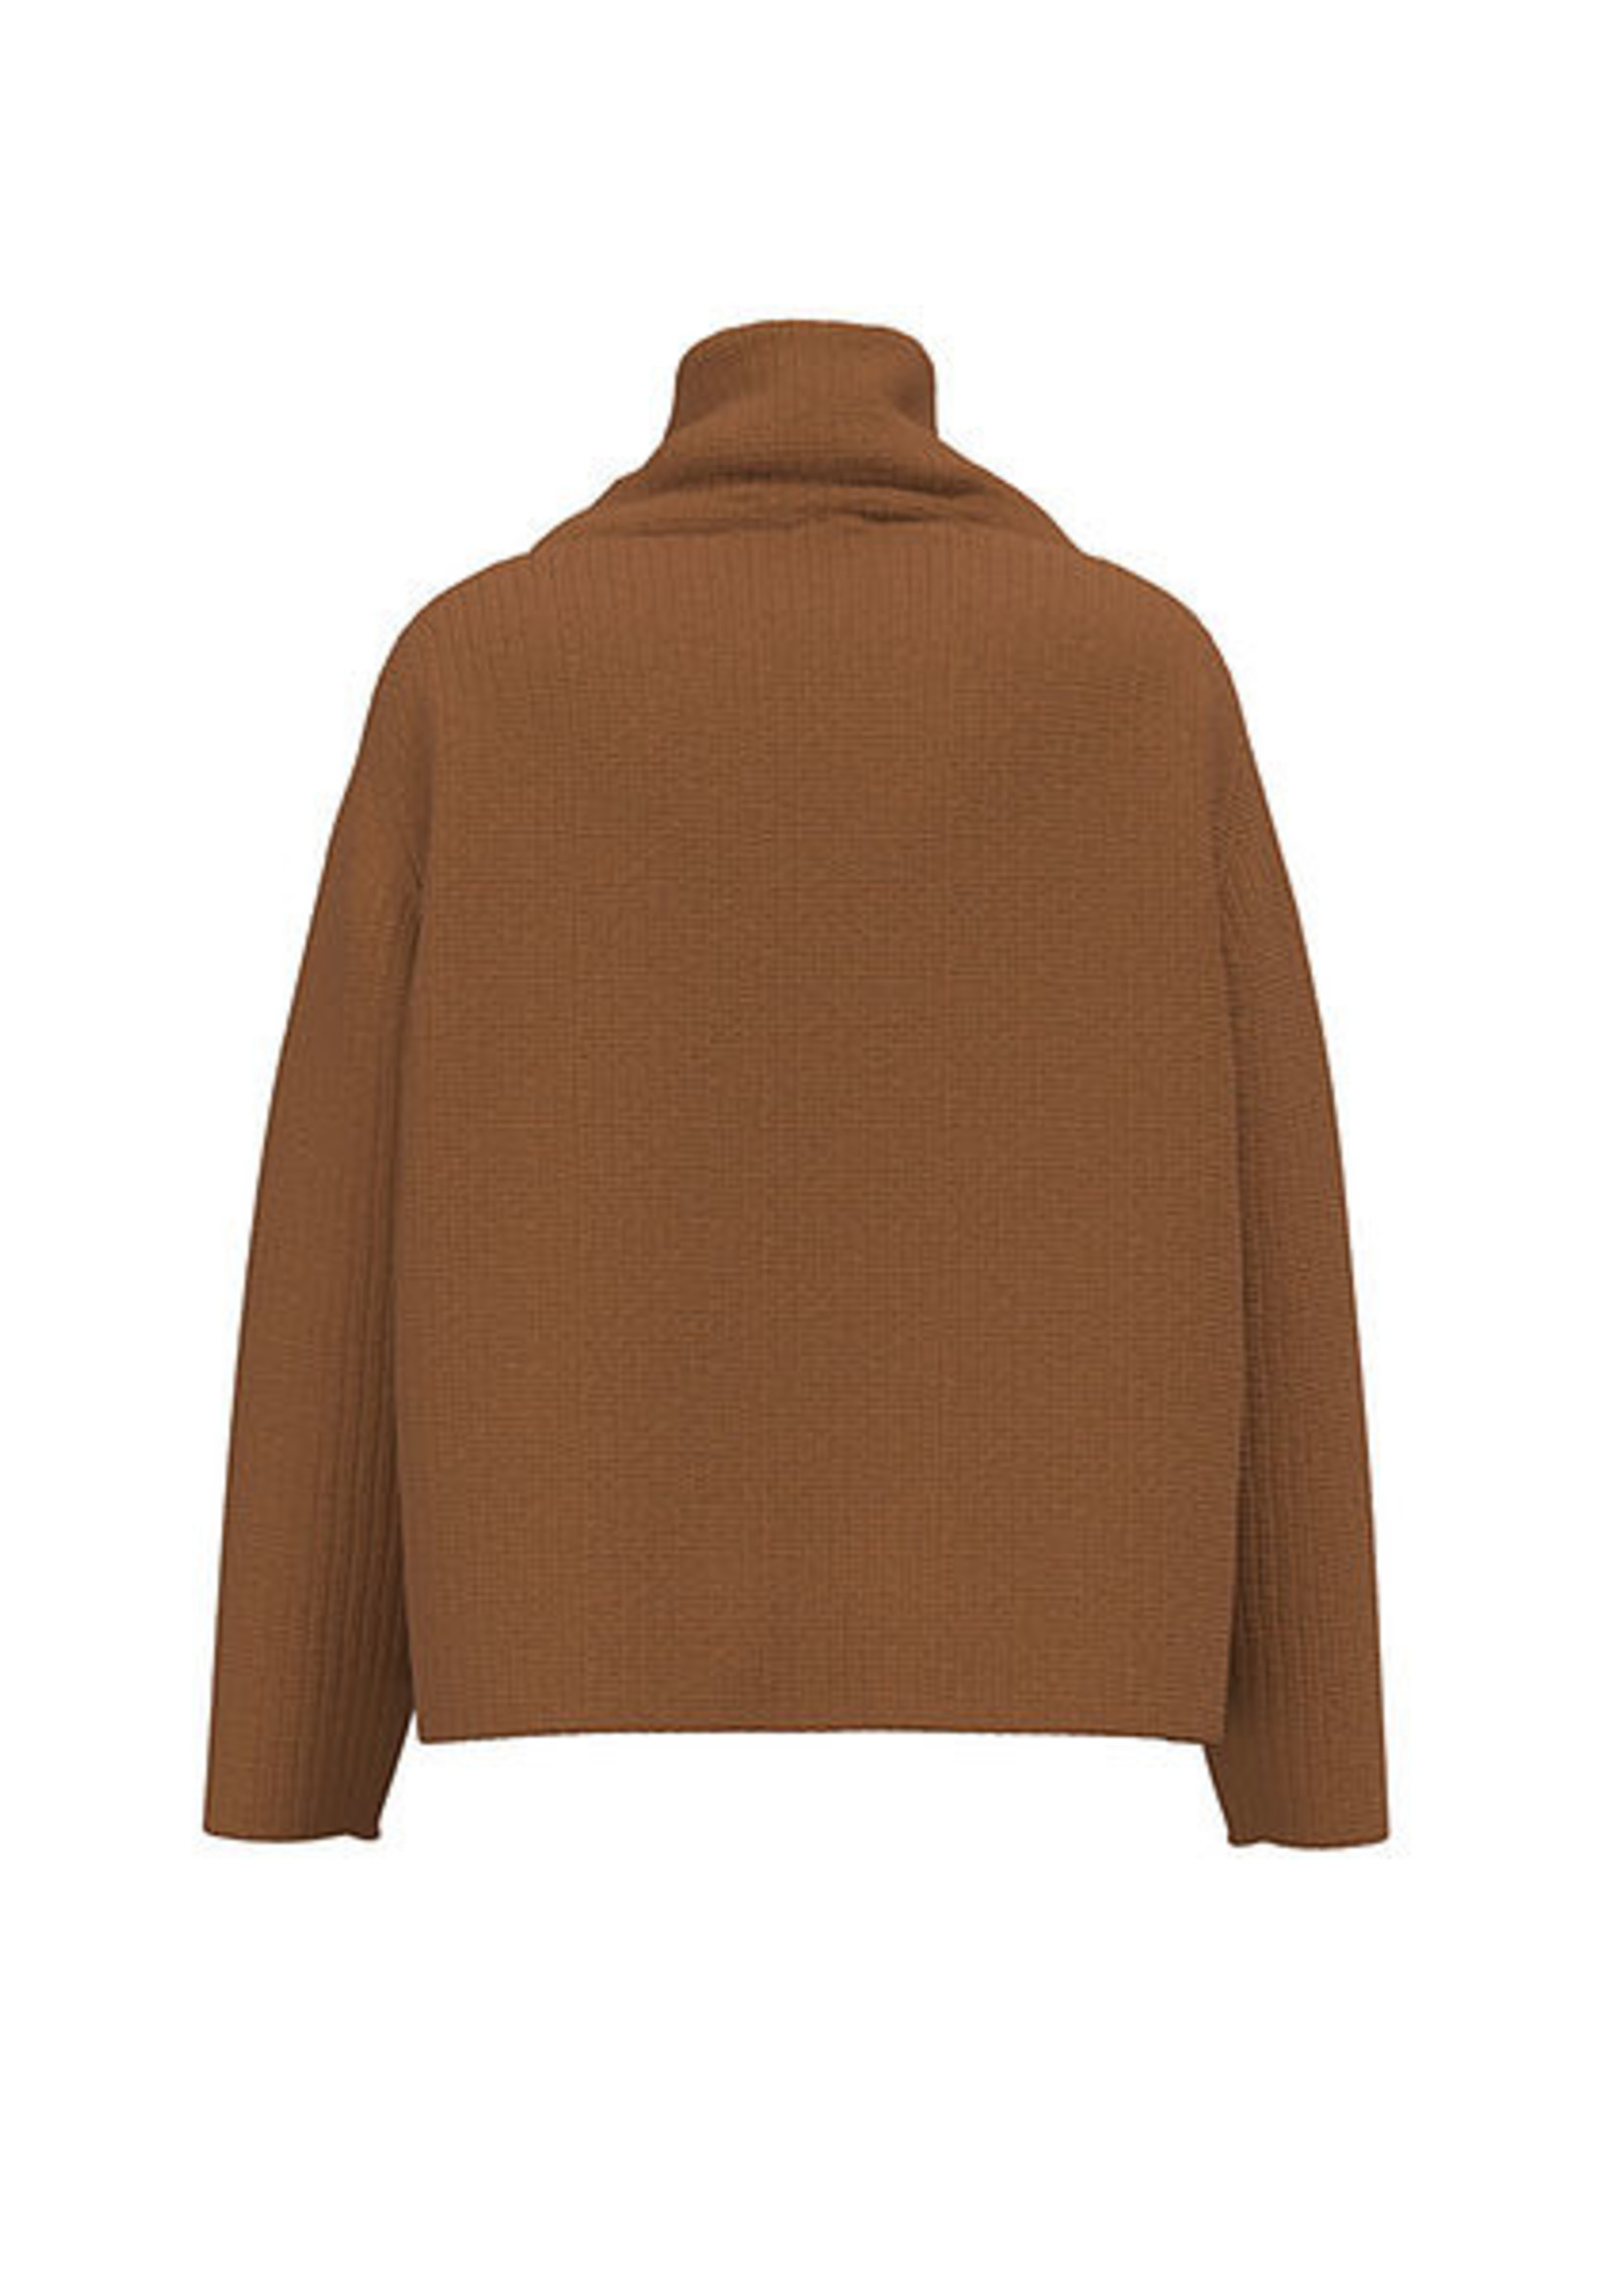 Marccain Sports Sweater RS 41.23 M18 sienna